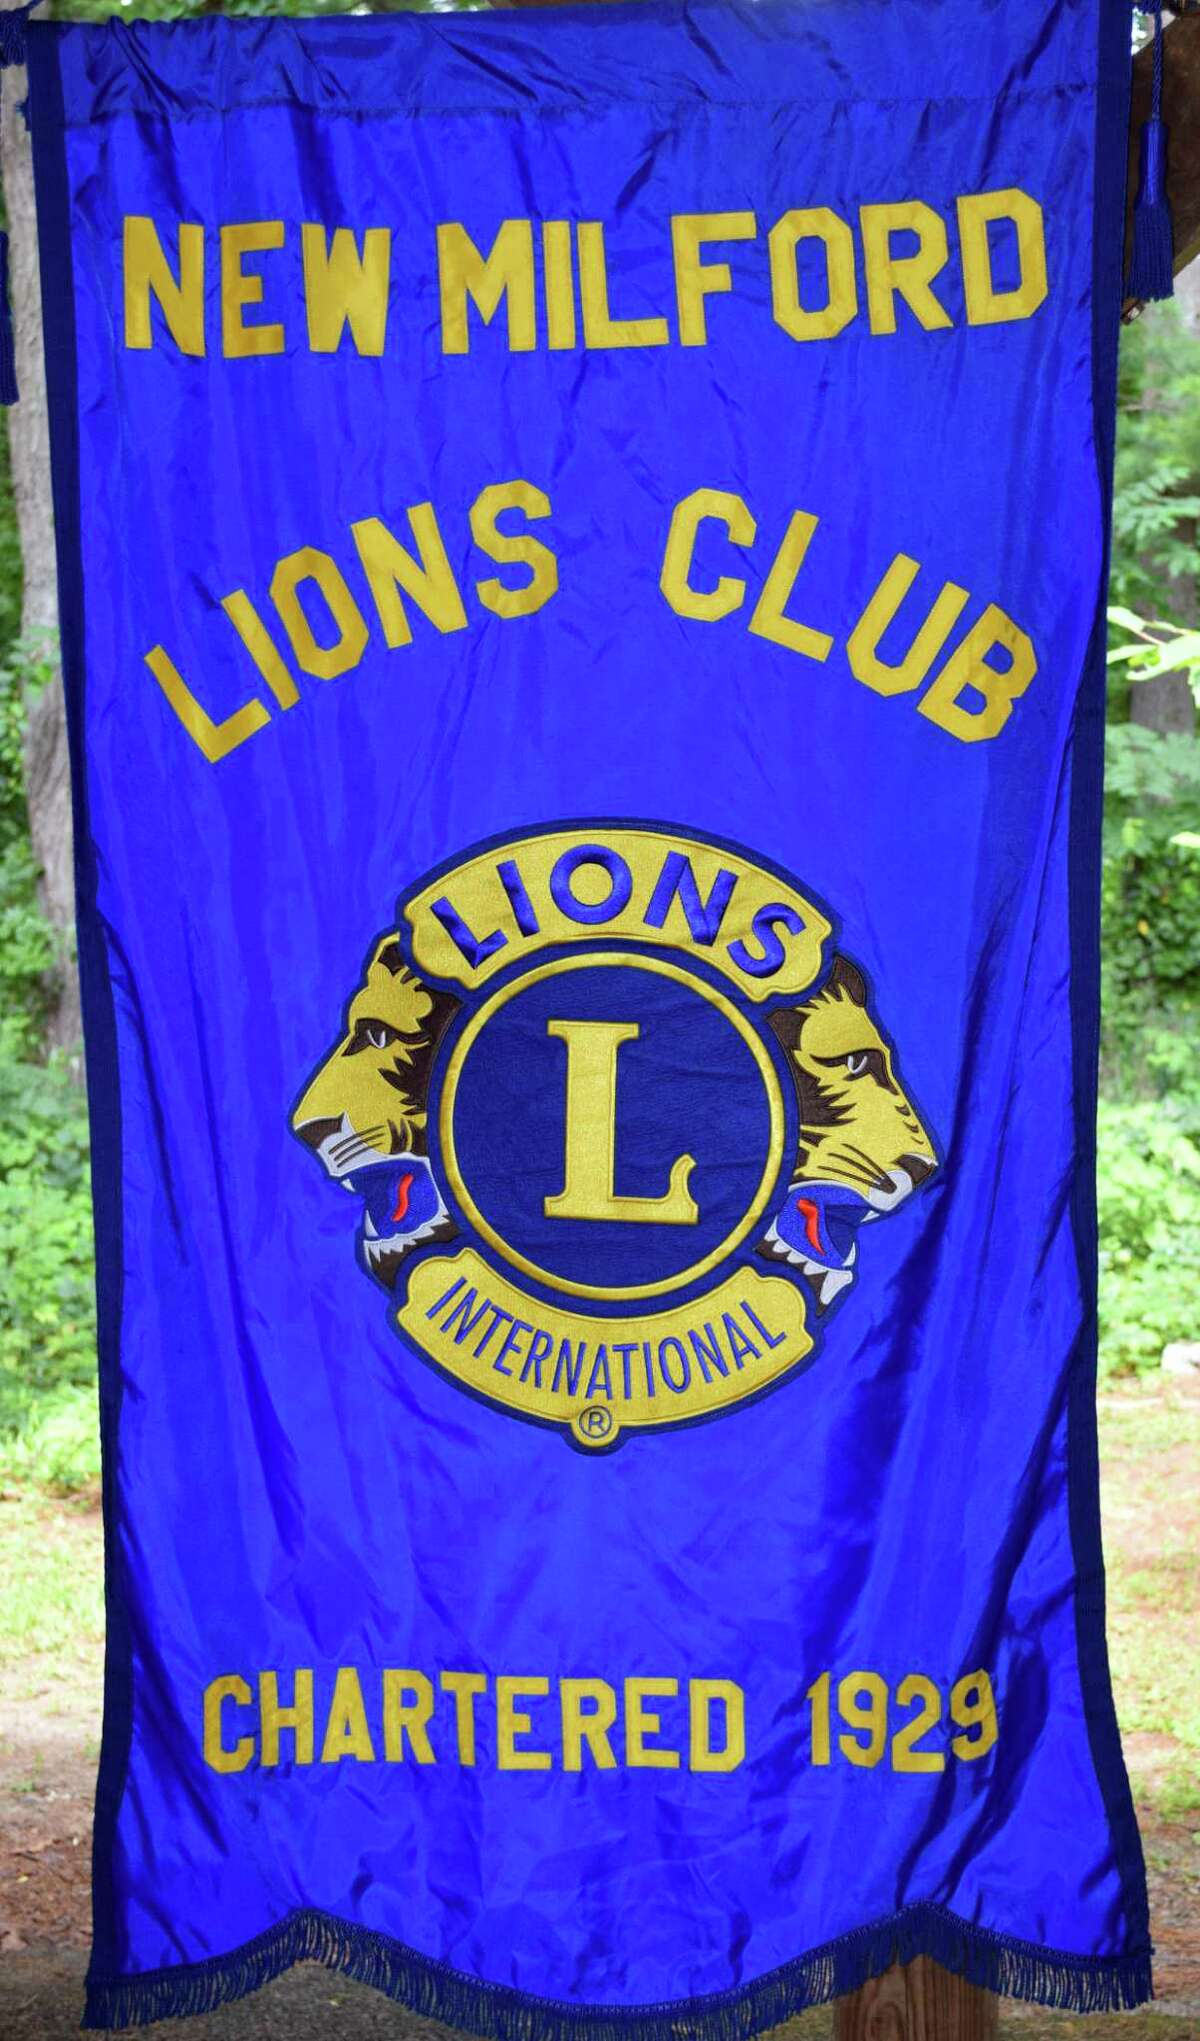 Spectrum/The New Milford Lions Club held its annual senior picnic Aug. 25, 2017, at Harrybrooke Park & Harden House Museum in town. The picnic was one of the club's largest in more recent years, drawing about 90 people. In addition to a lunch of hamburgers, hot dogs and side dishes, guests were treated to music and bingo.